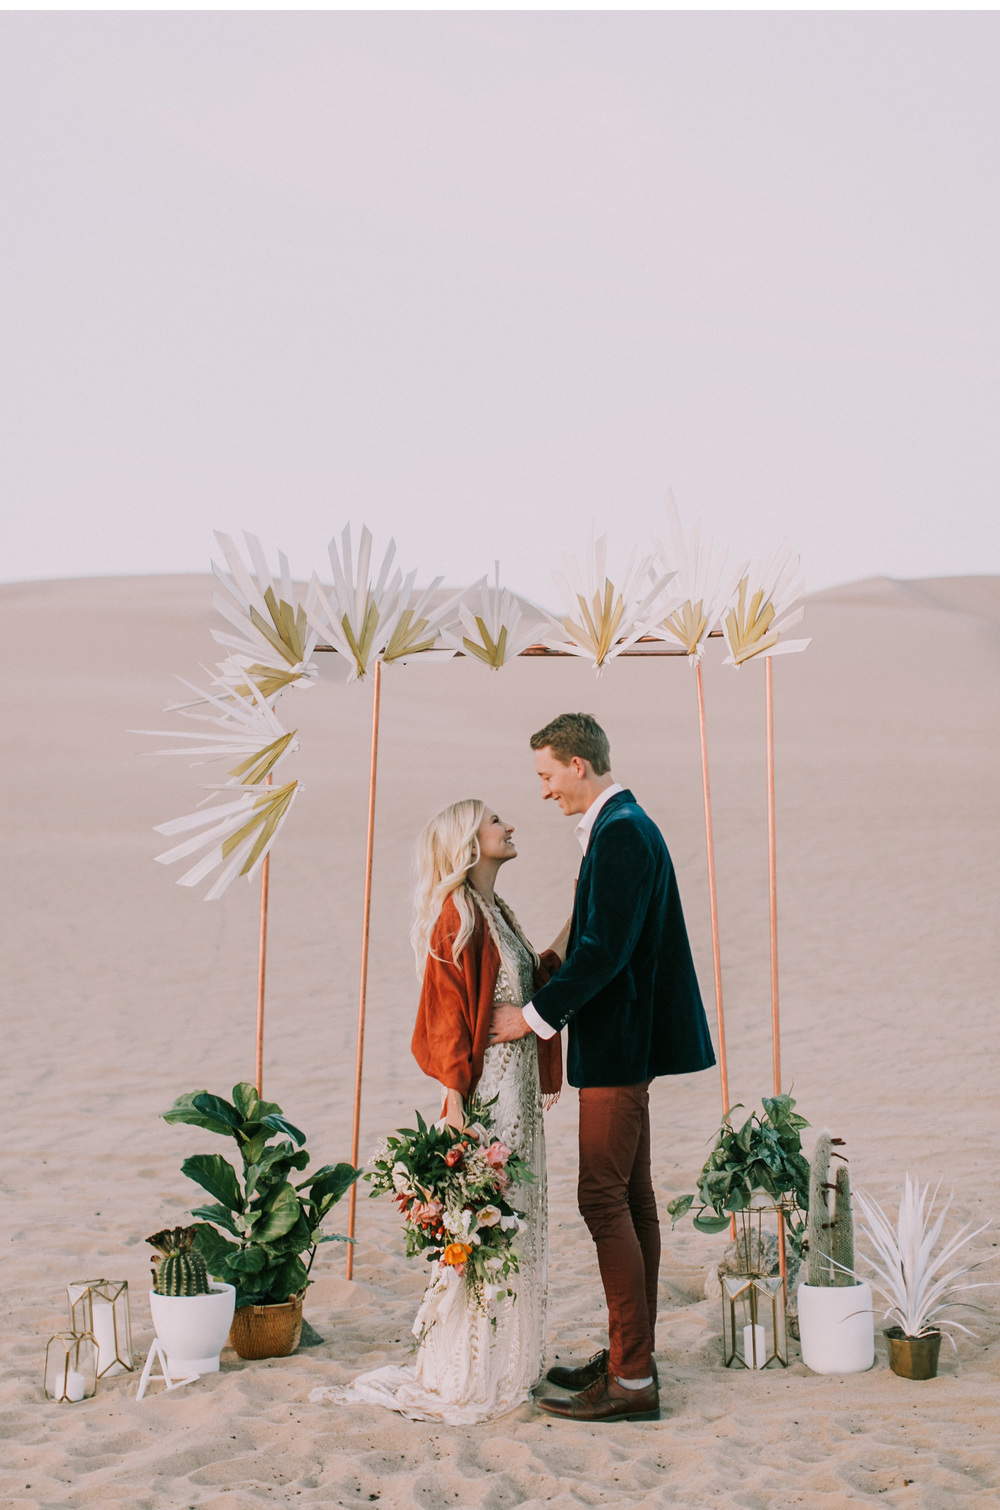 Desert-Wedding-Free-People-Wedding-Natalie-Schutt-Photography_06.jpg